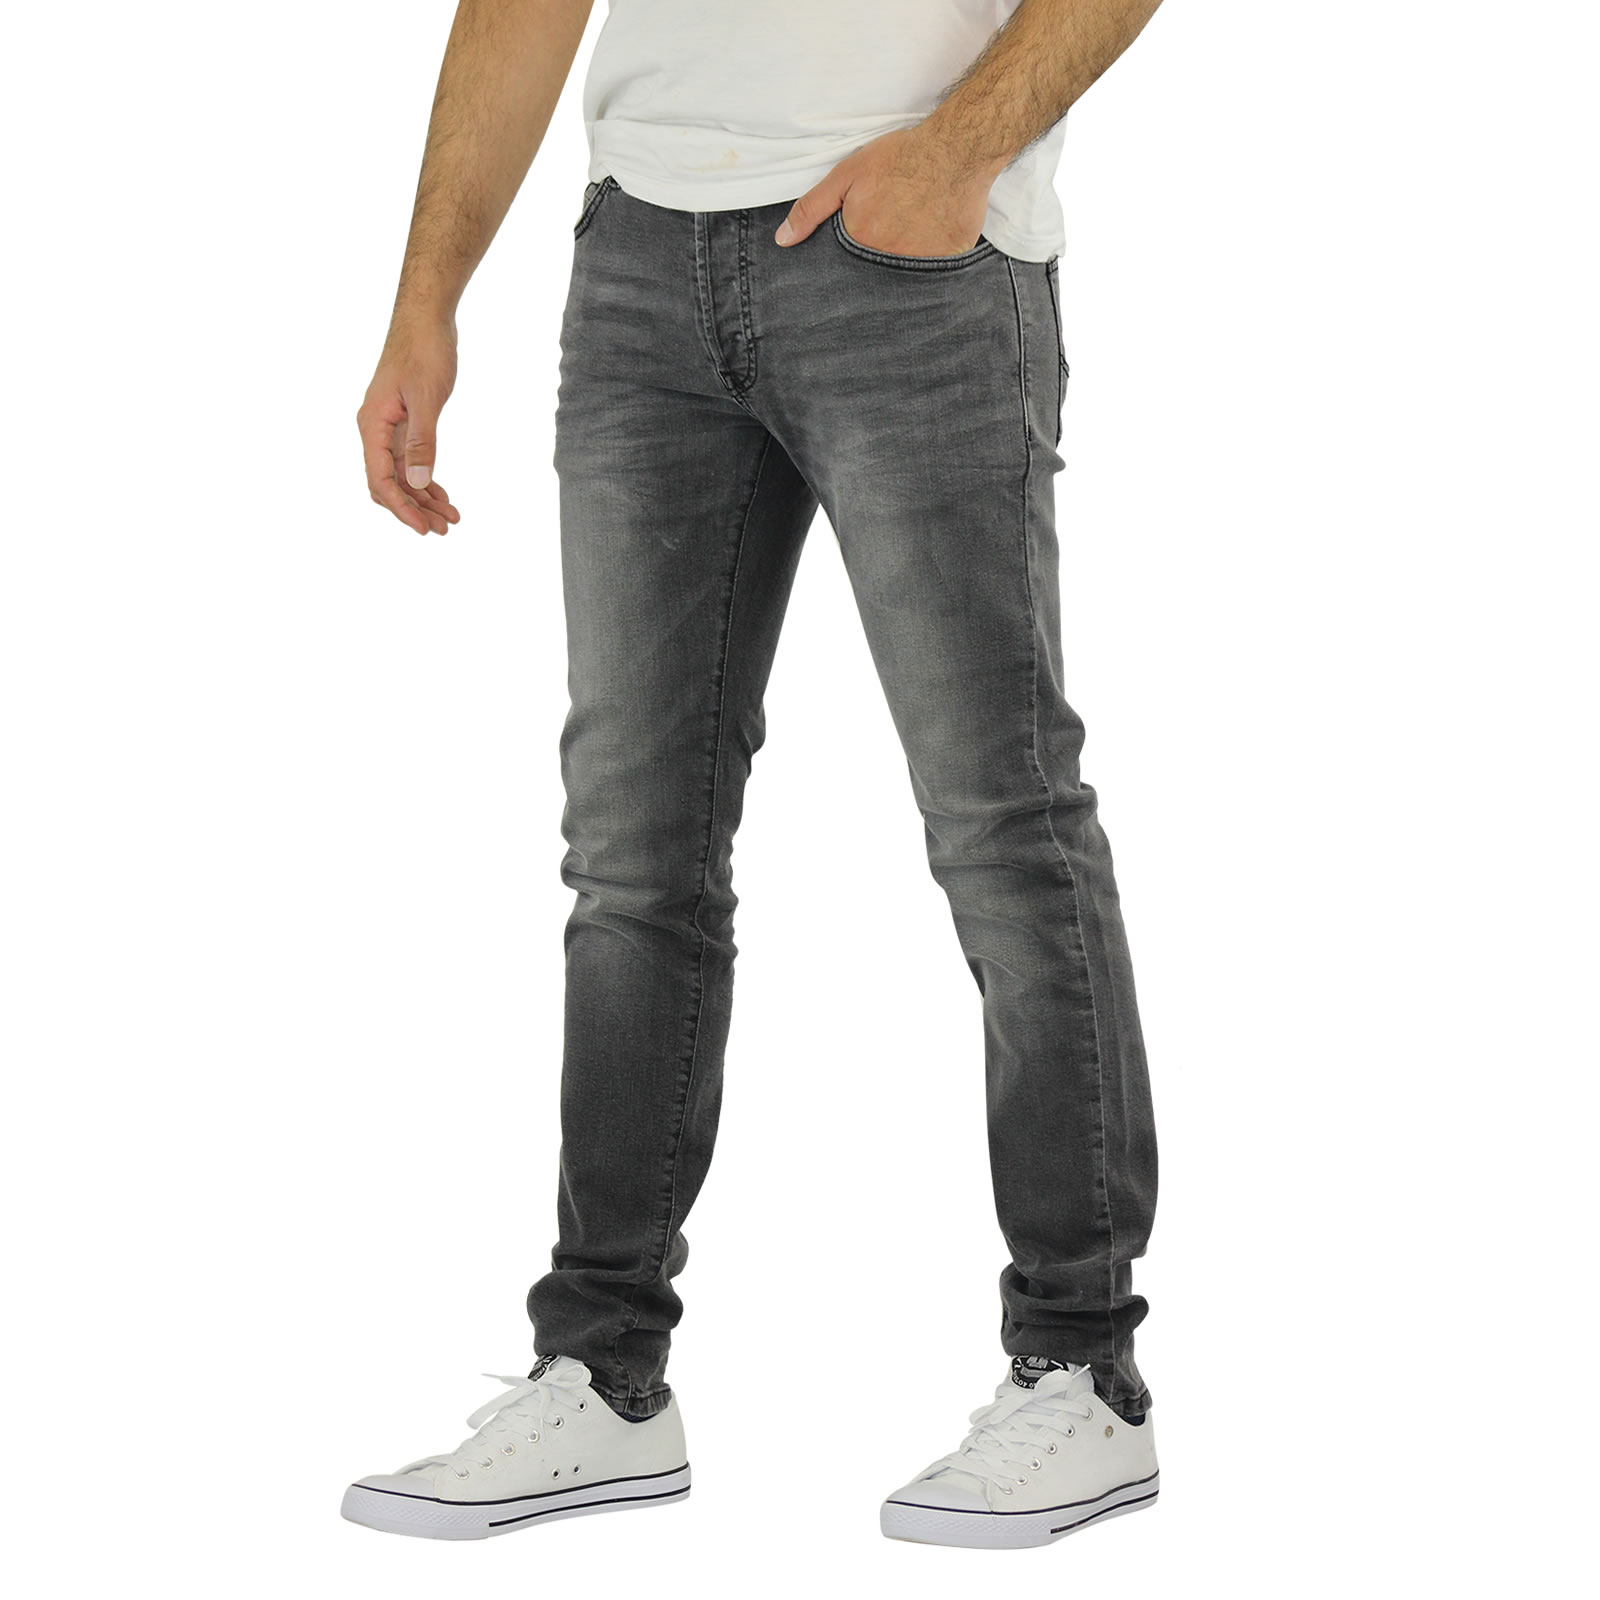 Athletic Skinny Jeans for Men. Abercrombie & Fitch's Athletic Skinny jeans for men are the perfect combination of a sleek silhouette and a classic straight fit.